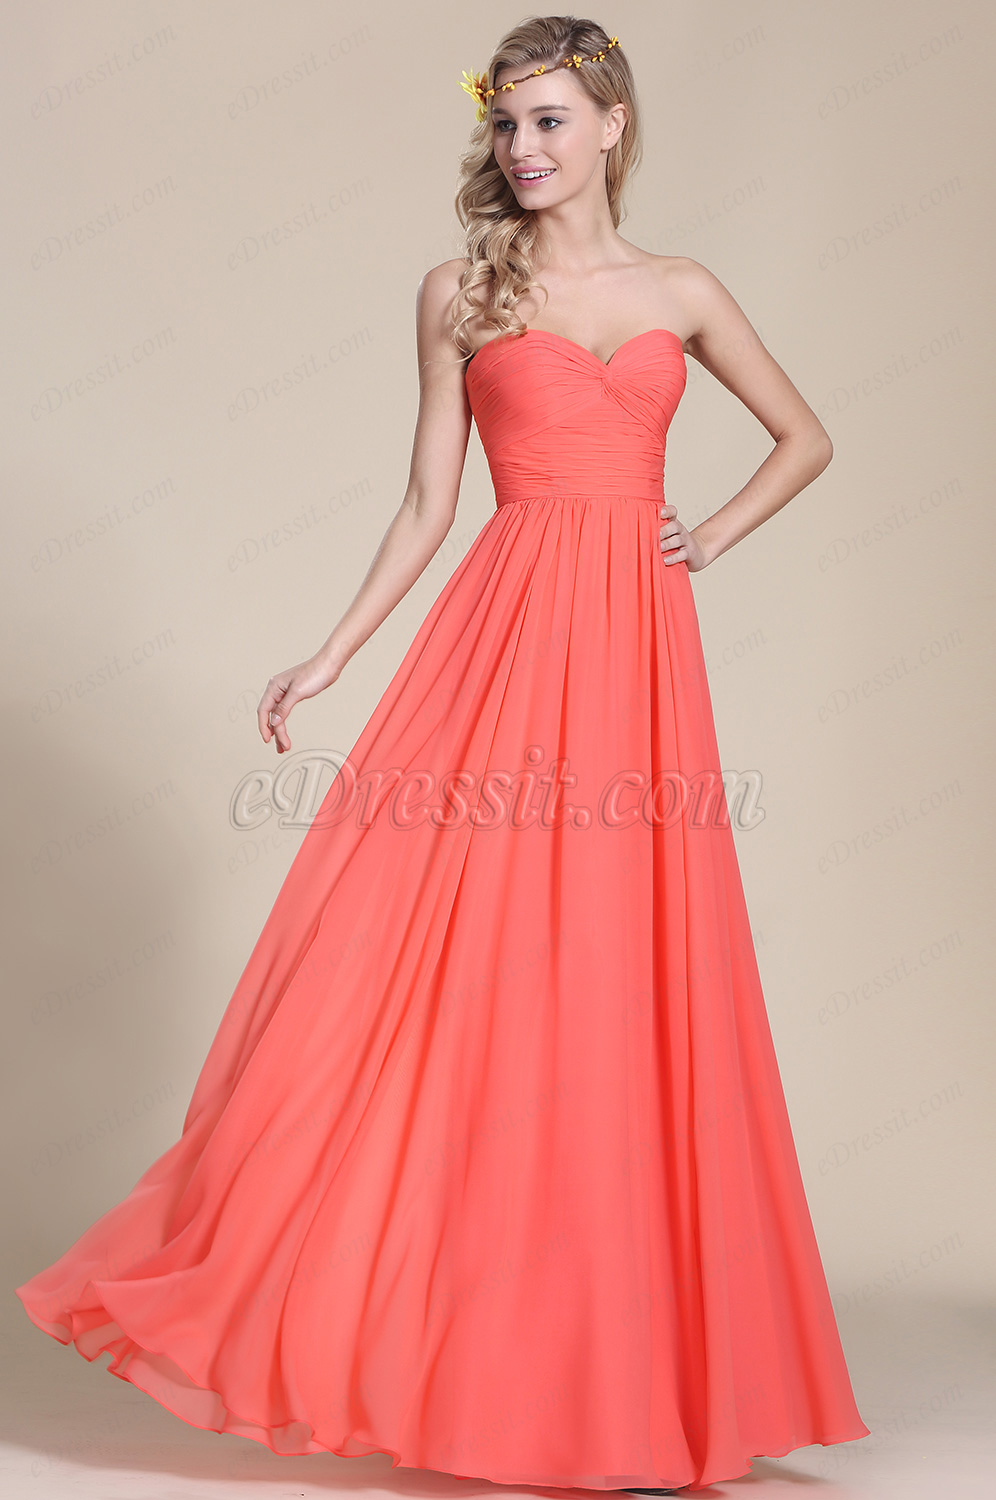 3 coral dress for wedding Six Coral Bridesmaid Dresses You ll Love